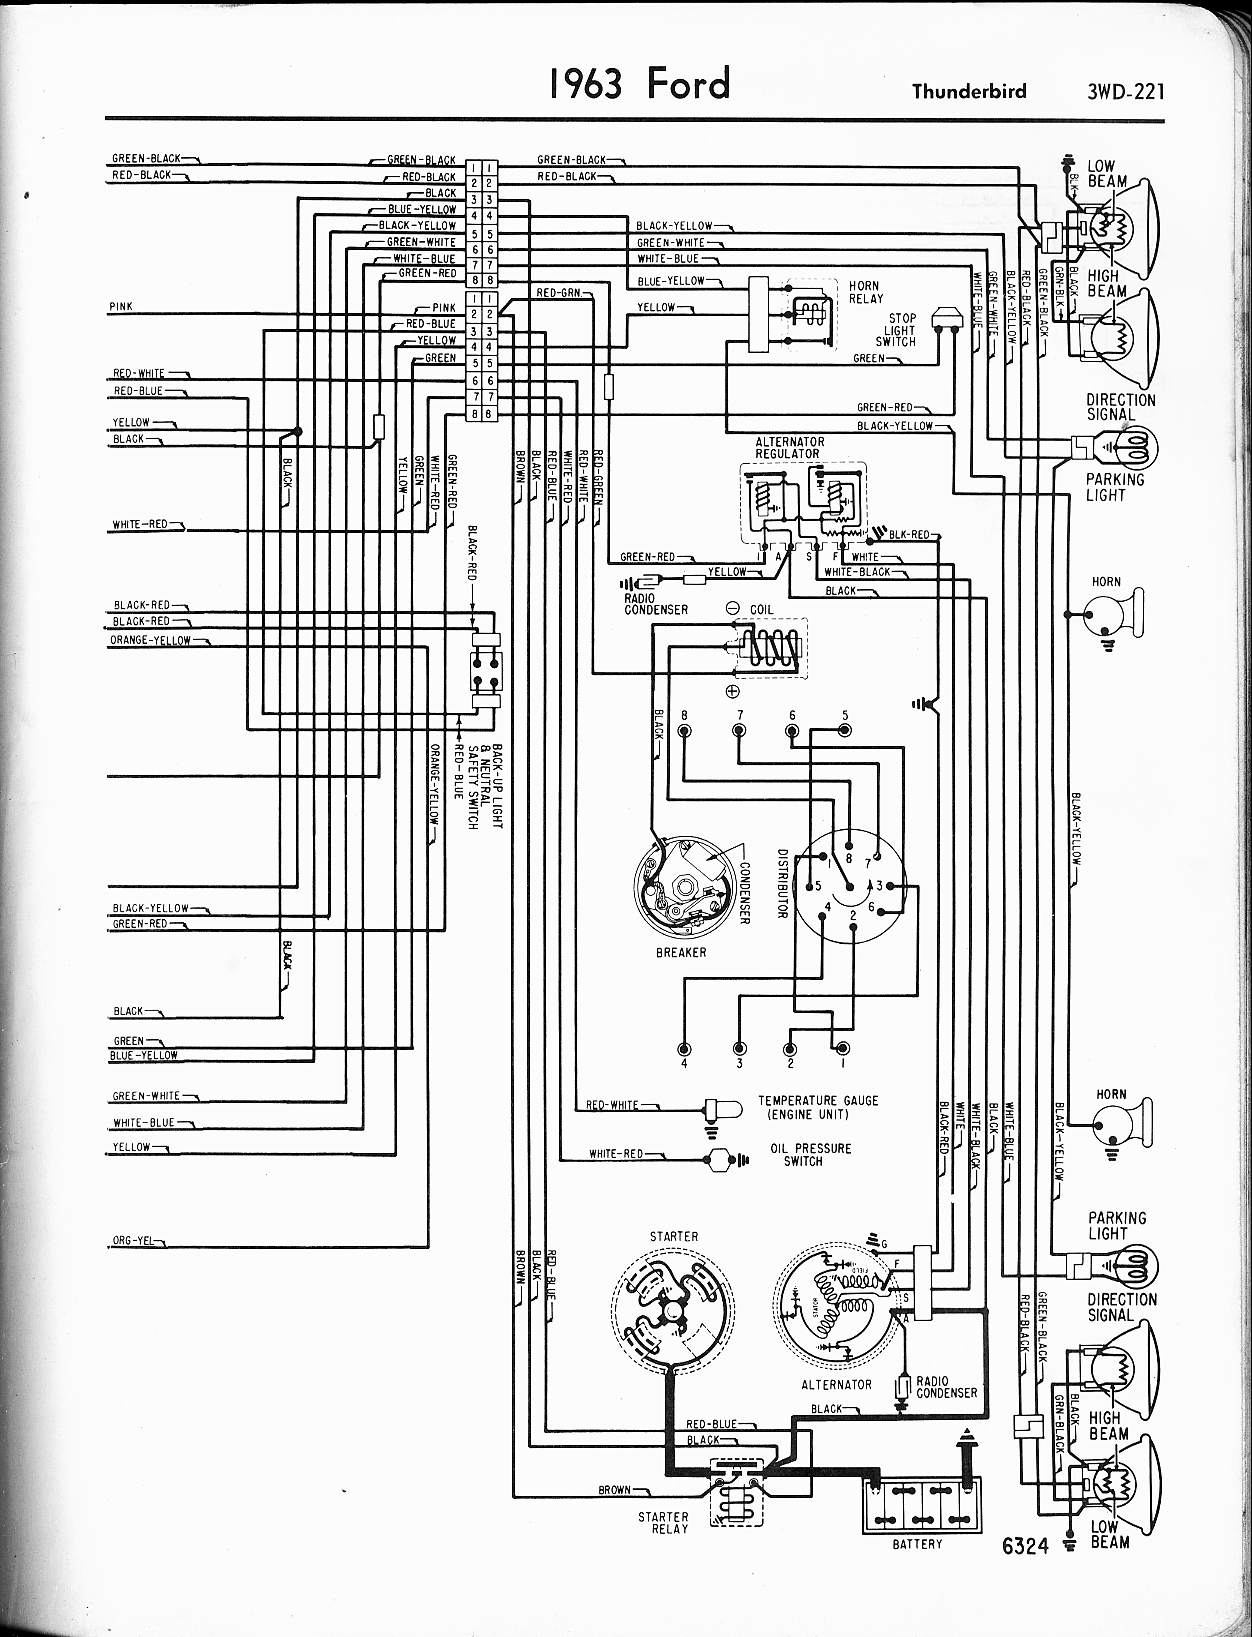 1977 Ford Ranchero Wiring Diagram Oldsmobile Cutlass Amc Hornet 66 Schematics On